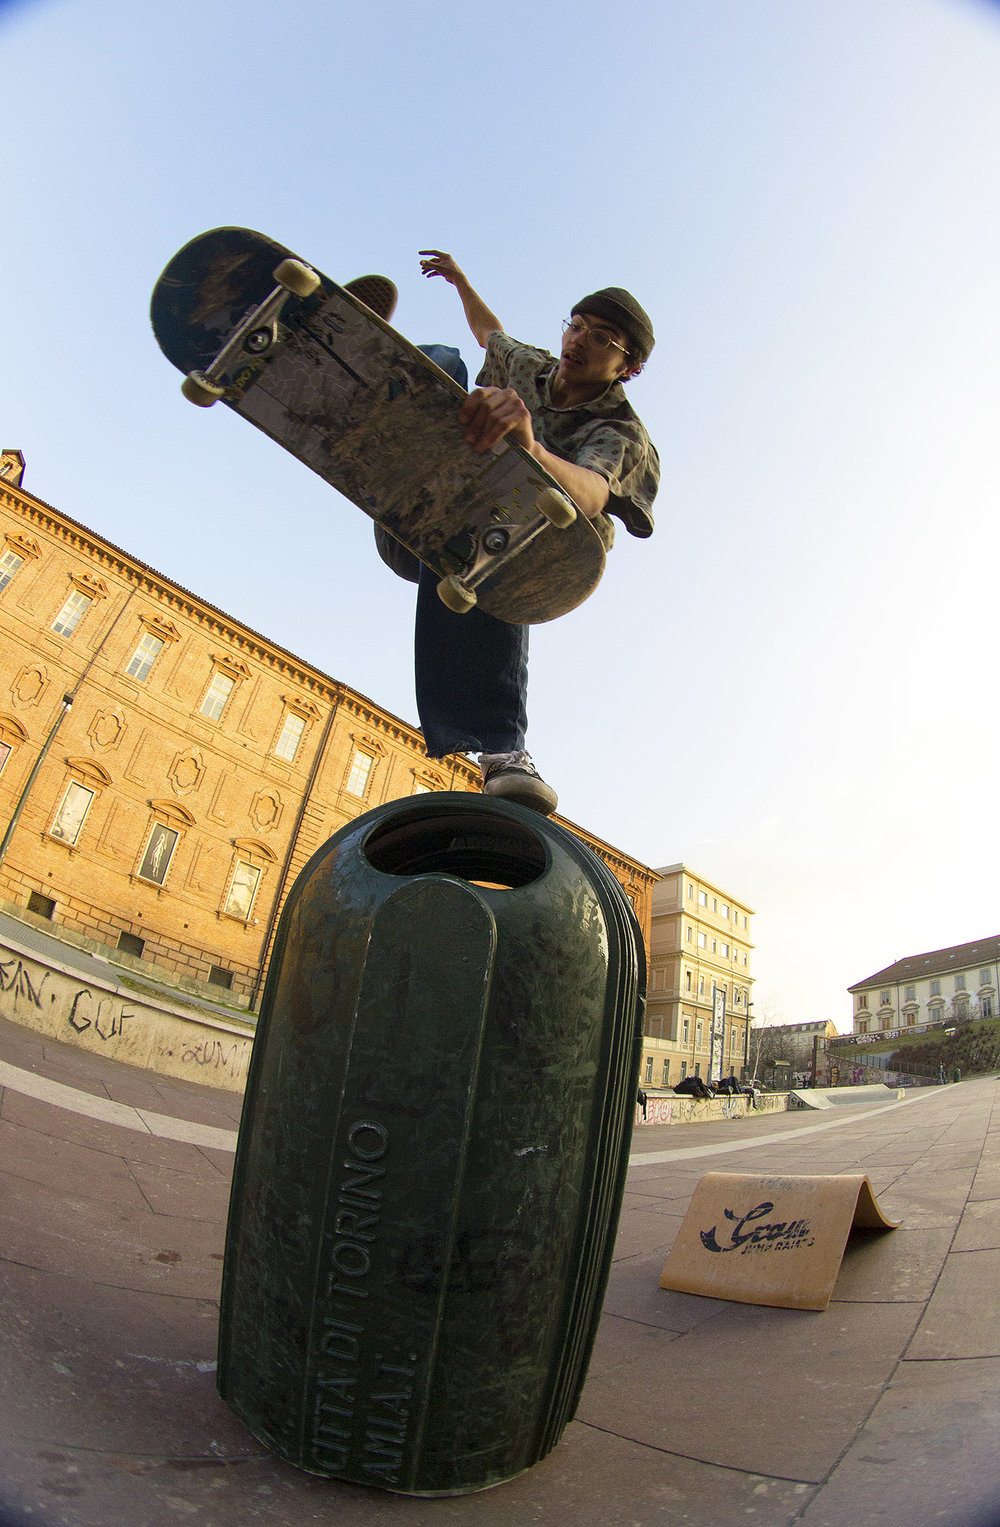 Skating over a garbage can with Graw Jump Ramps